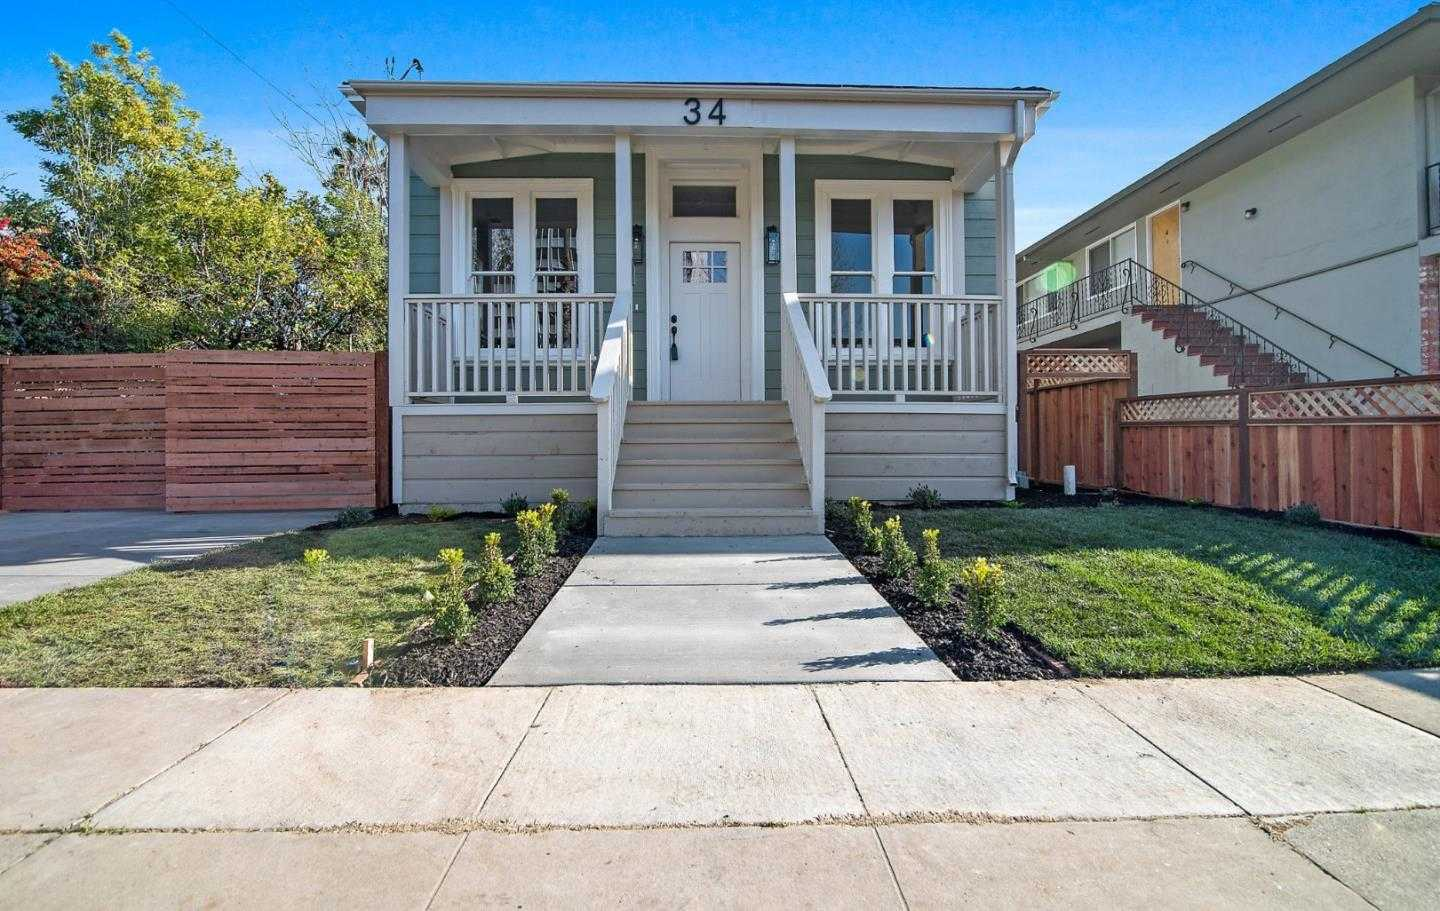 $1,349,900 - 4Br/3Ba -  for Sale in San Jose